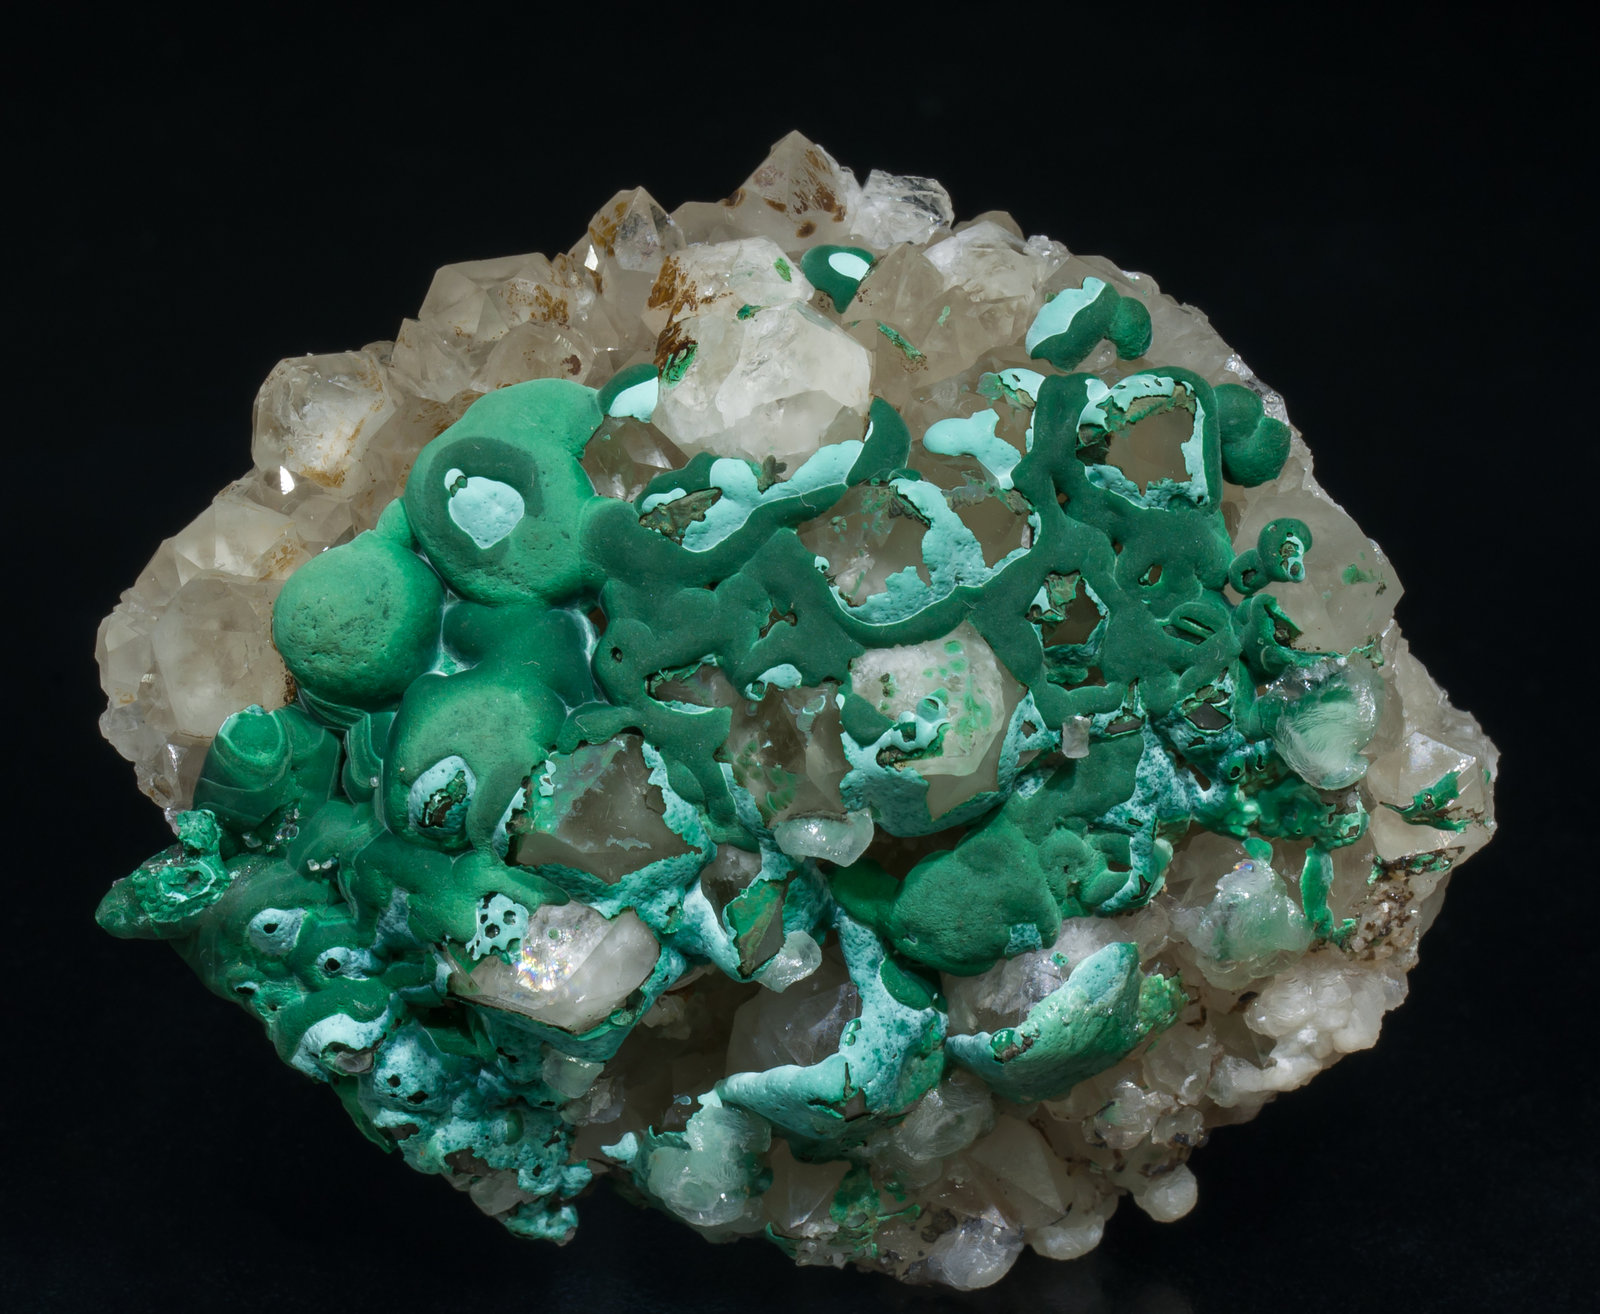 specimens/s_imagesAC3/Malachite-SC86AC3f.jpg